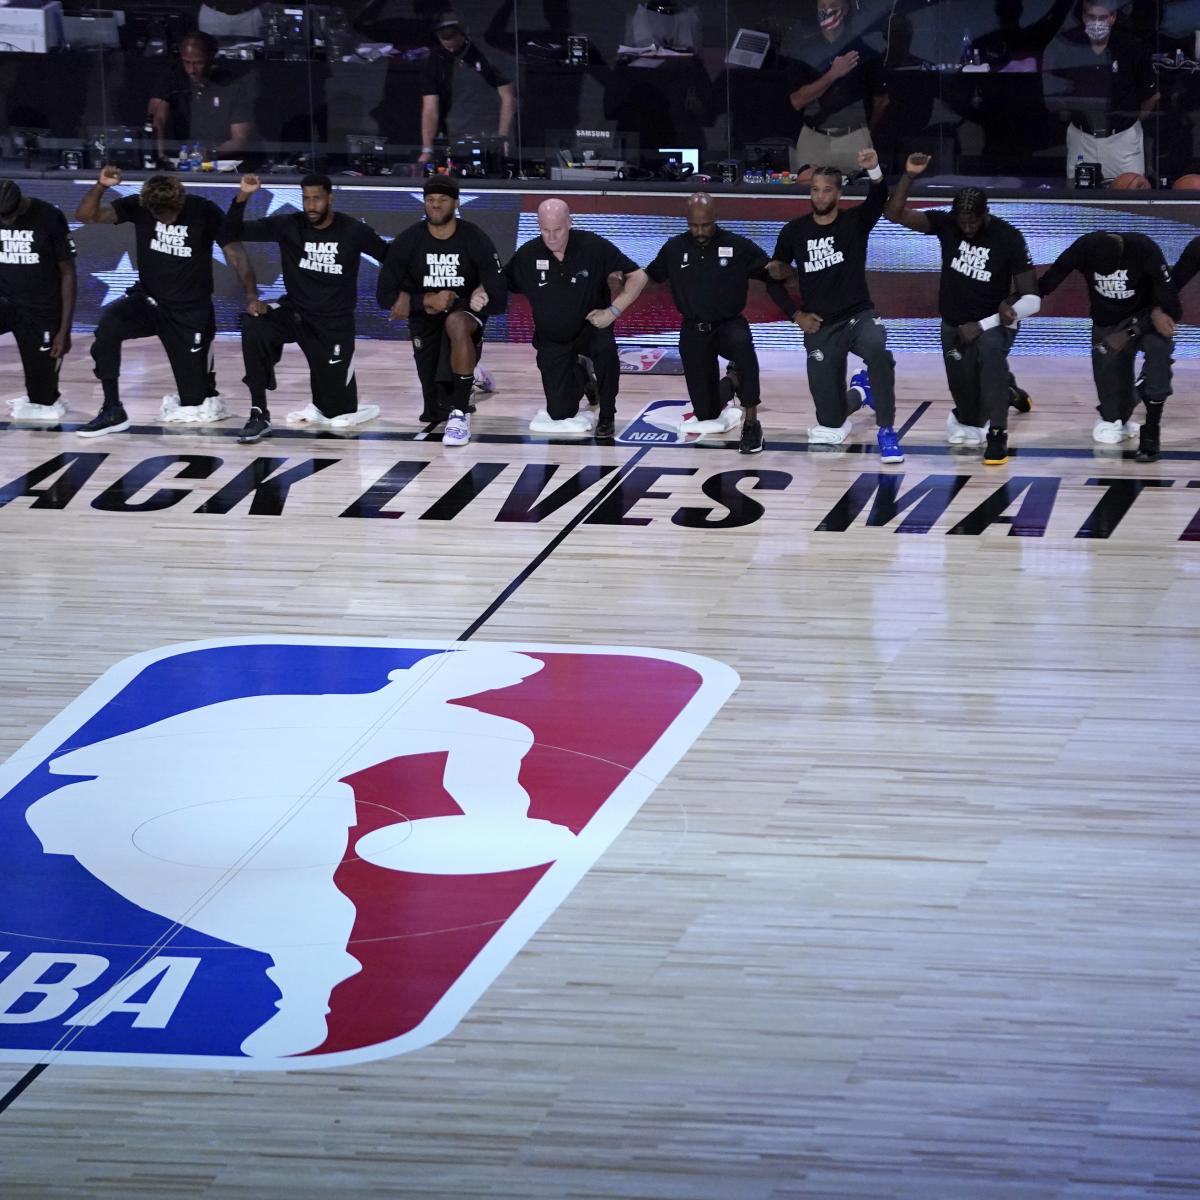 NBA Players Will Resume 2020 Playoffs; Thursday Games to Be Postponed